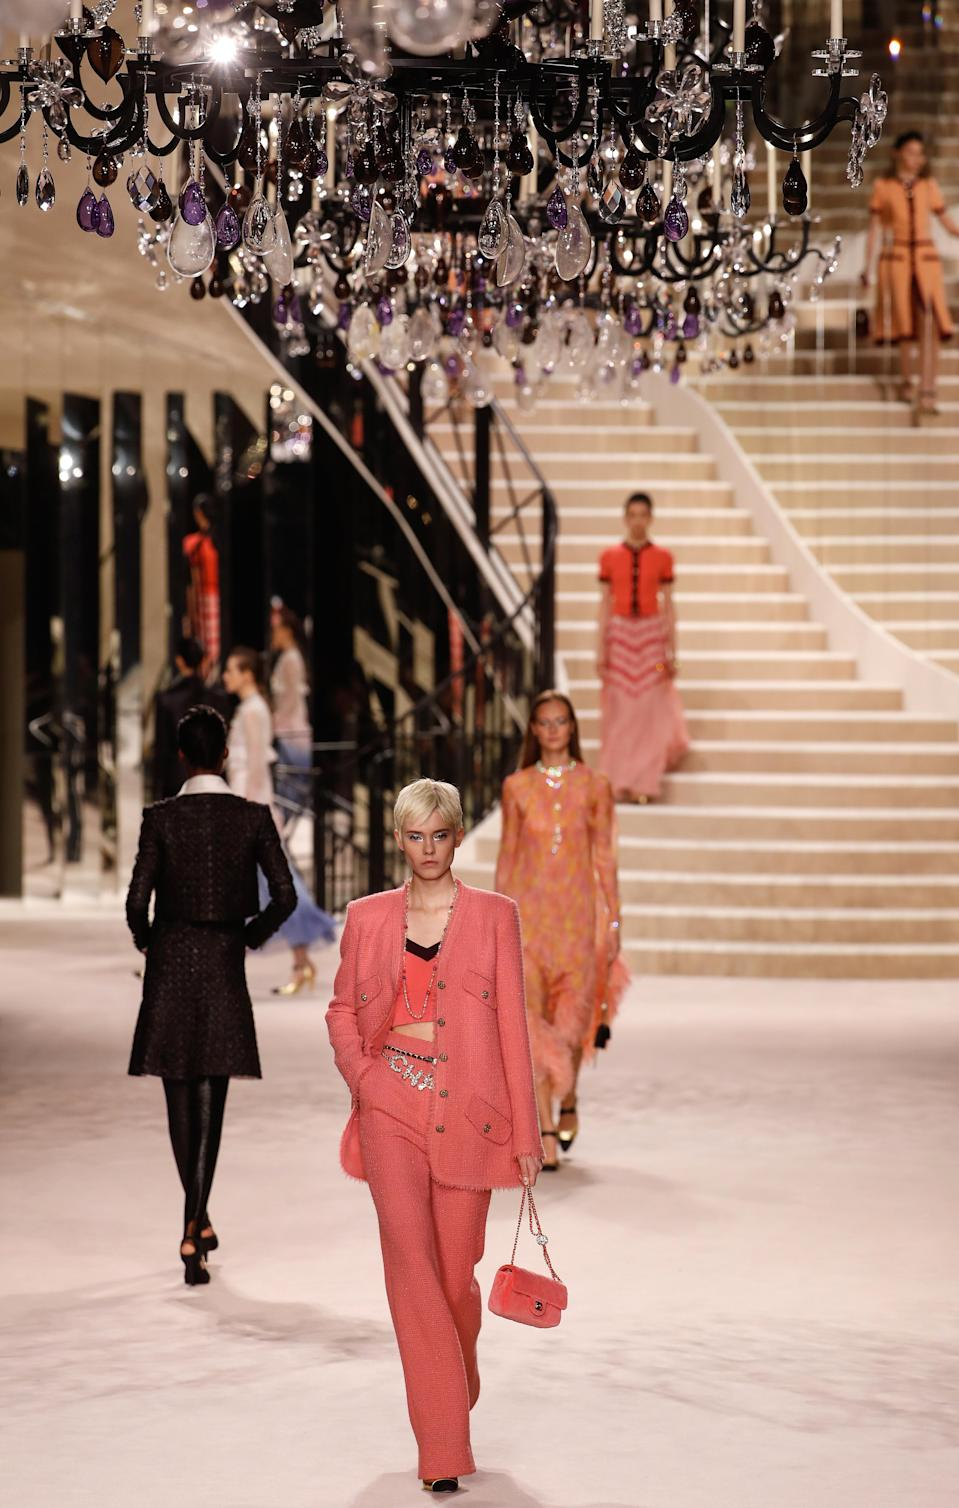 The legendary Chanel maison at 31 rue Cambon had been transposed in the centre of the Grand Palais by the filmmaker Sofia Coppola for the Chanel Métiers d'art presentation in 2019.